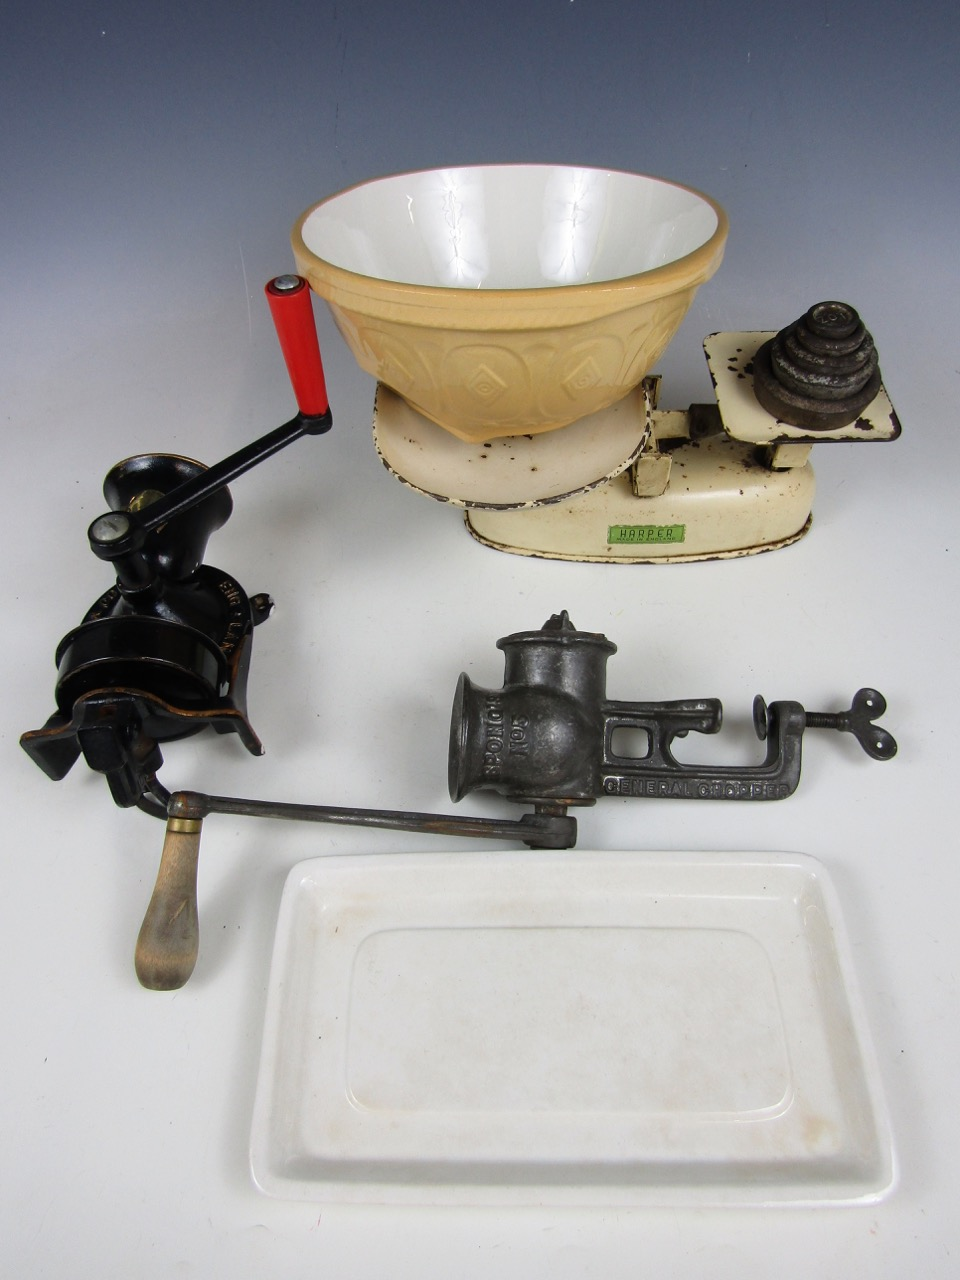 Lot 34 - A set of vintage Harper kitchen scales with weights together with a coffee grinder, a mincer, a